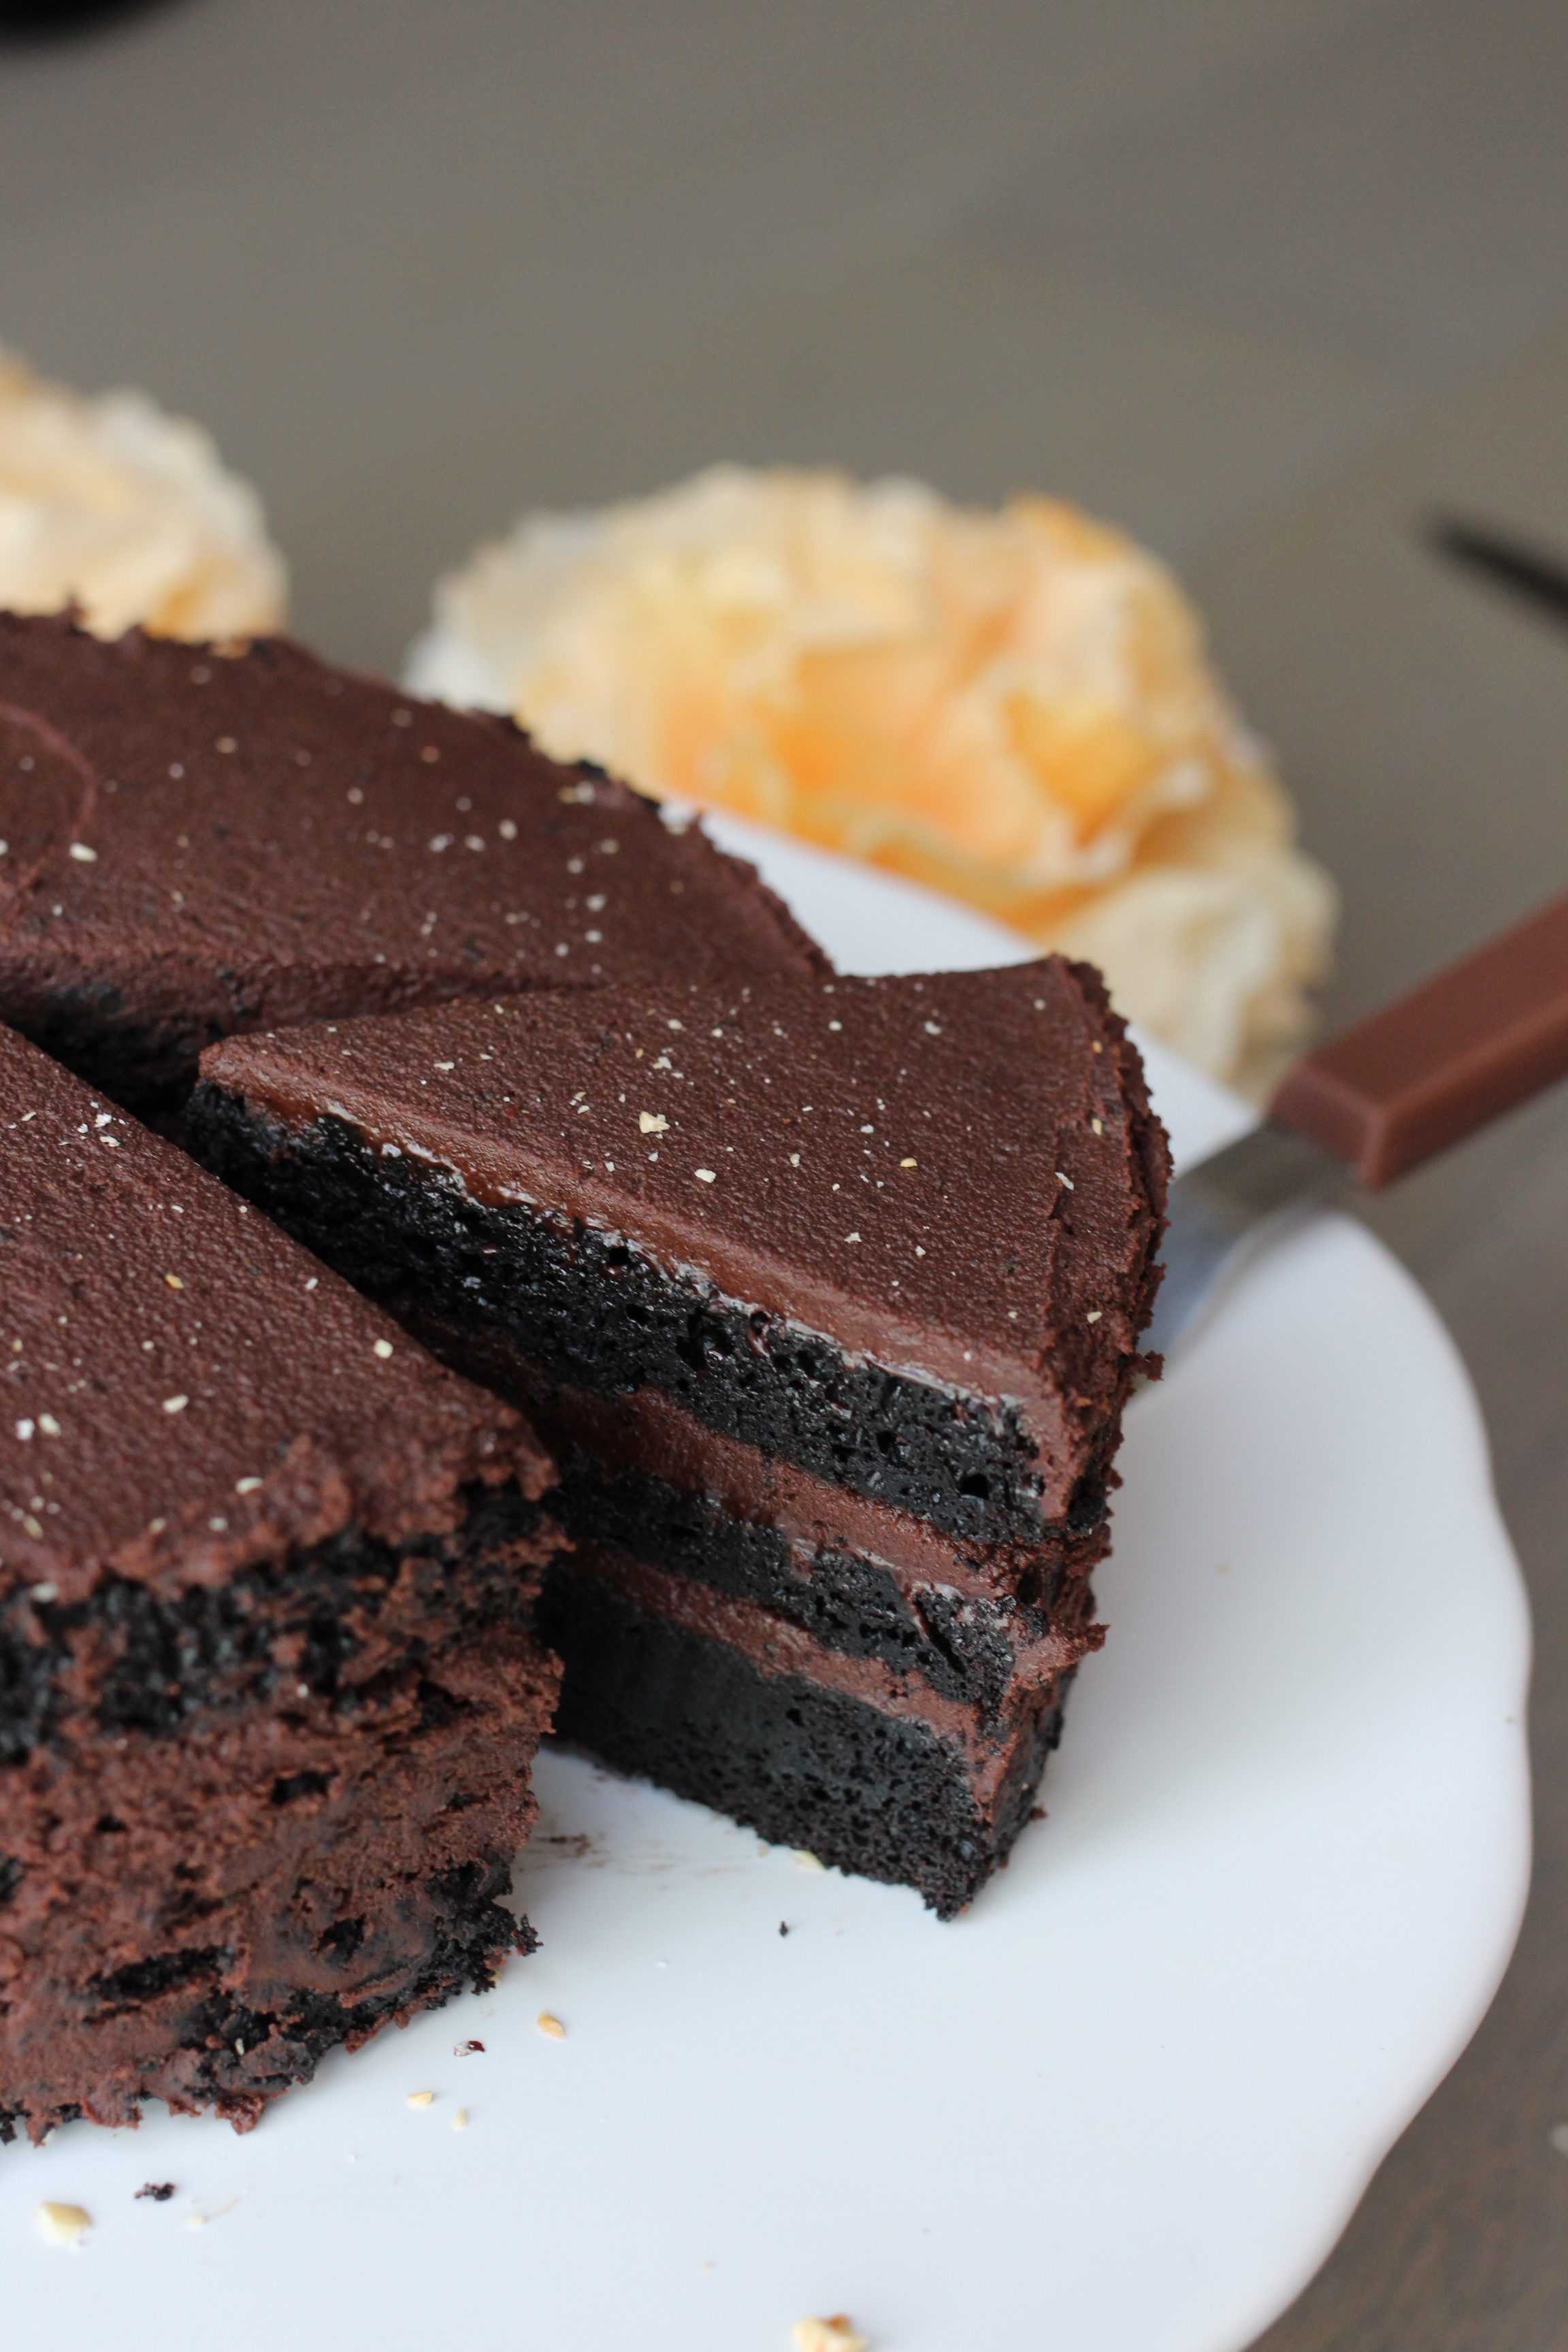 Dark and decadent, this is a VEGAN take on a classic chocolate layer cake featuring a whipped coconut milk ganache frosting. Yum!